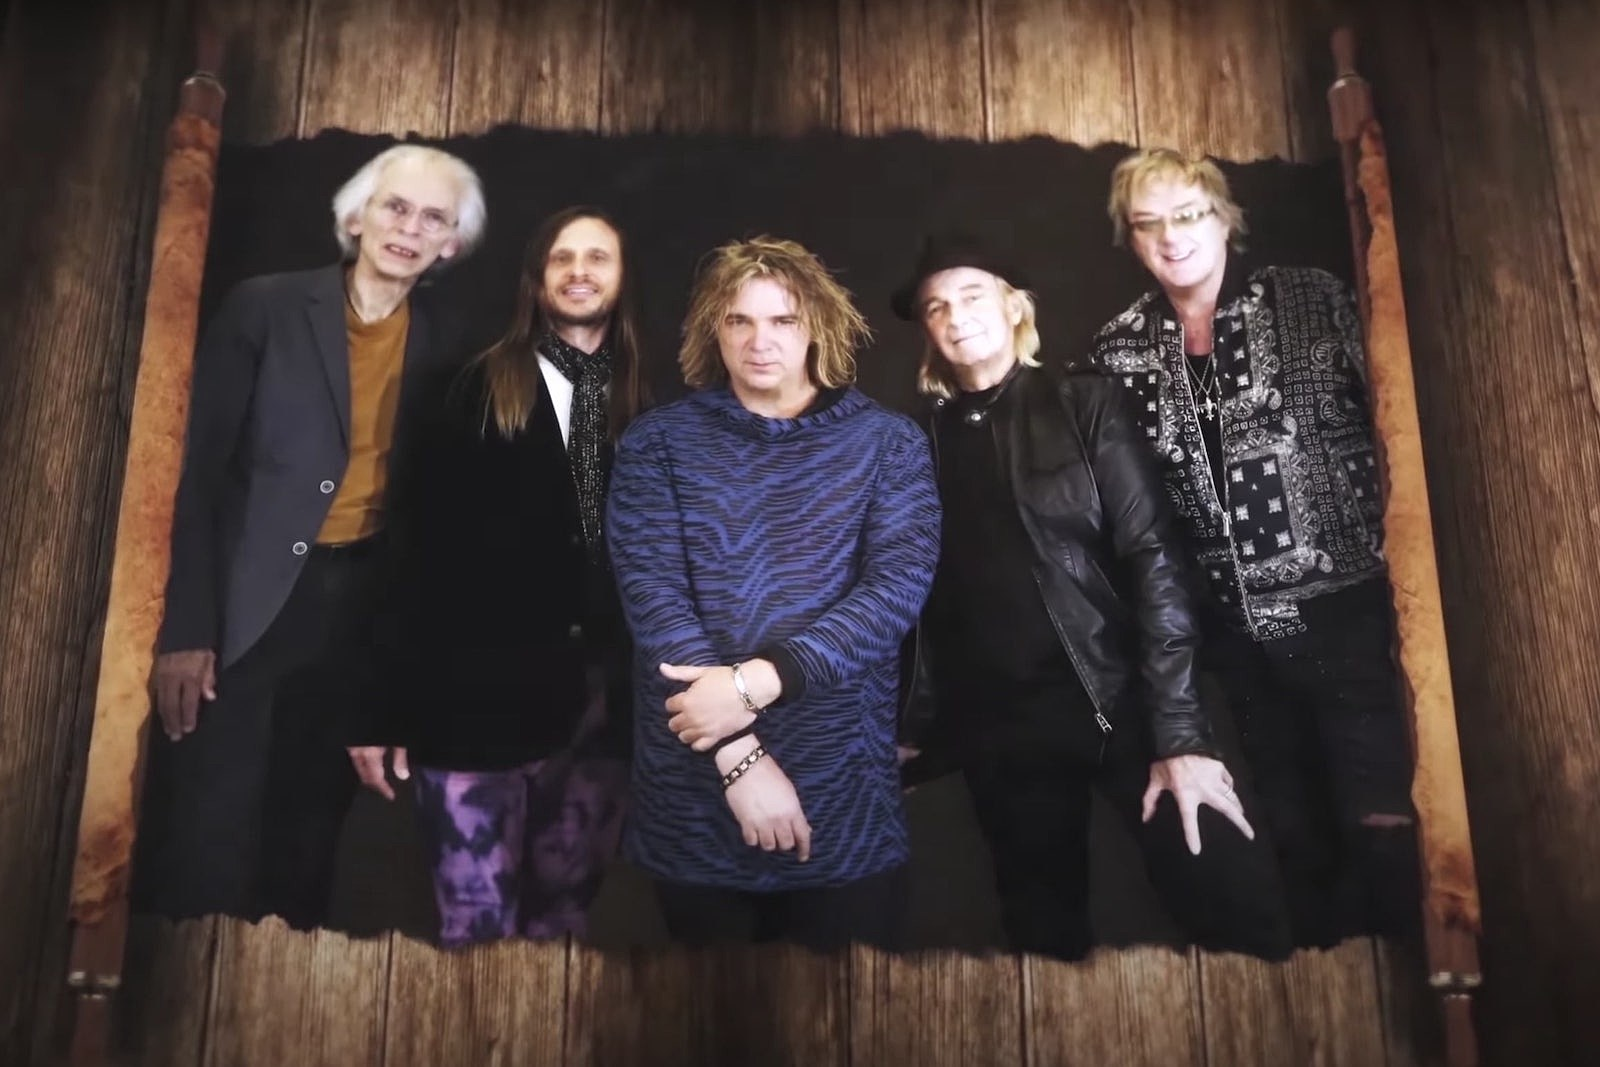 Hear Yes' First New Song Without Chris Squire, 'The Ice Bridge'